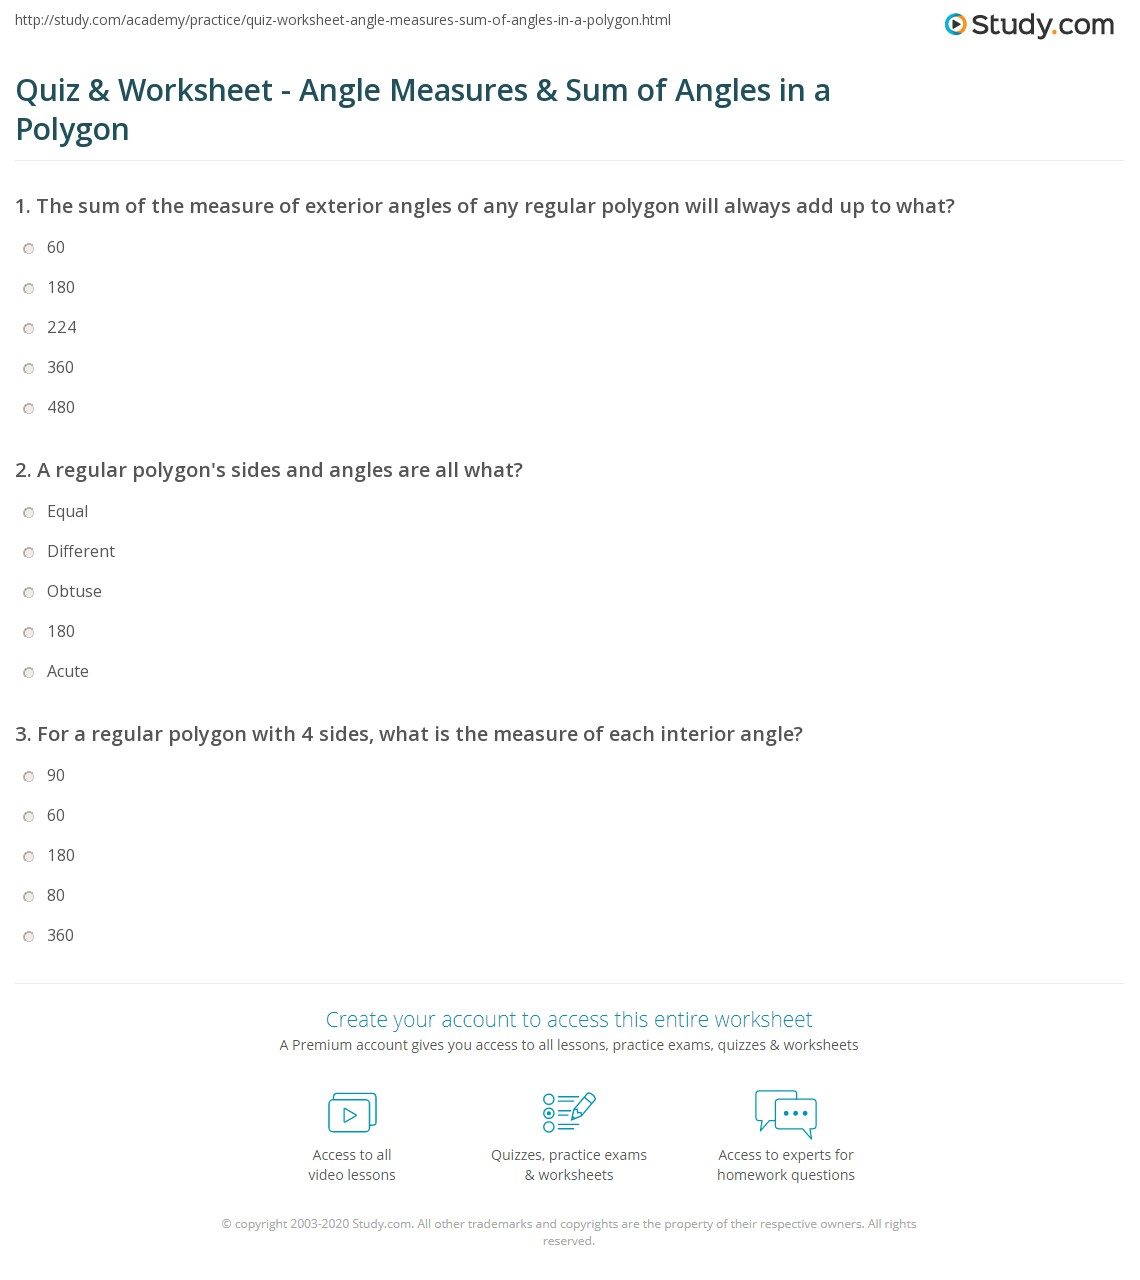 Uncategorized Interior And Exterior Angles Of Polygons Worksheet quiz worksheet angle measures sum of angles in a polygon print how to measure the find worksheet